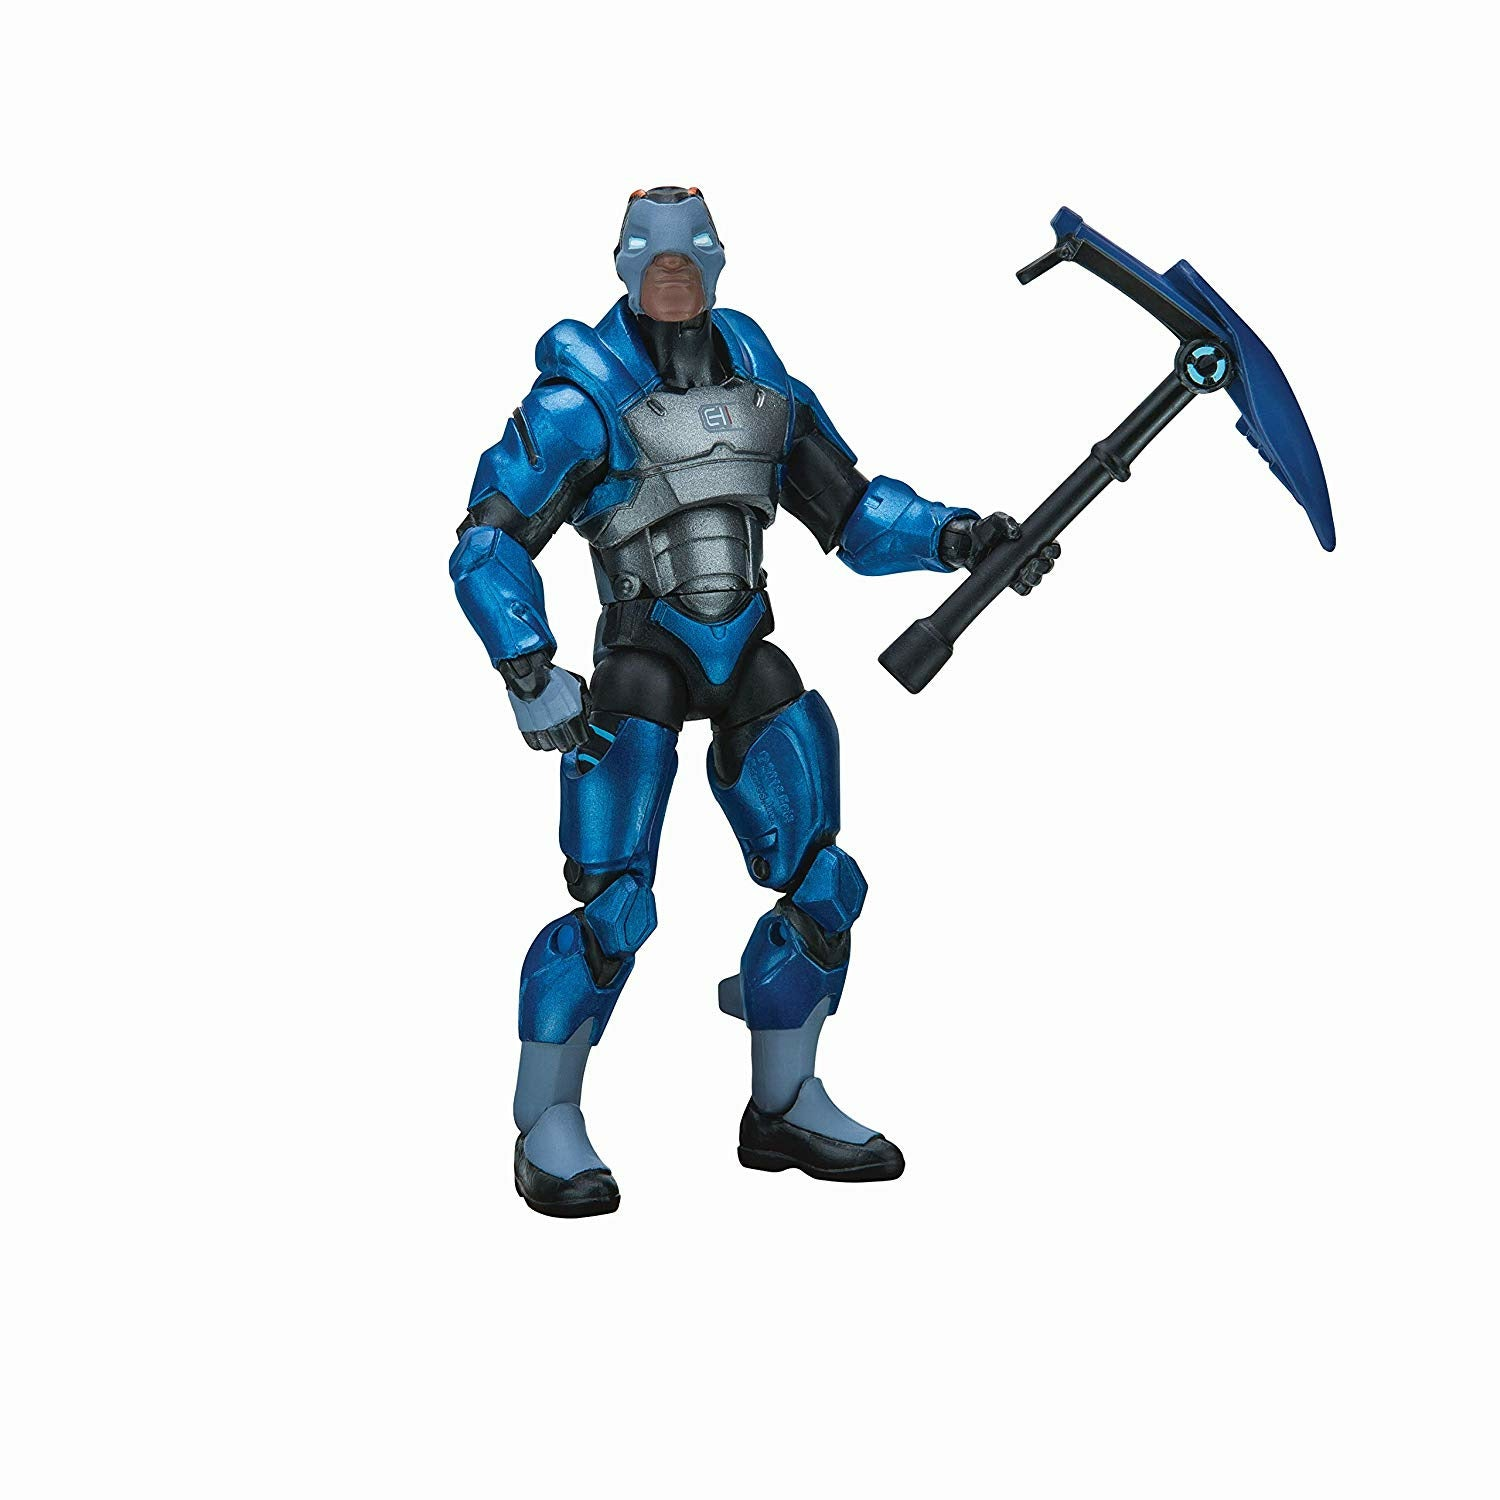 Fortnite Carbide Solo Mode Action Figure